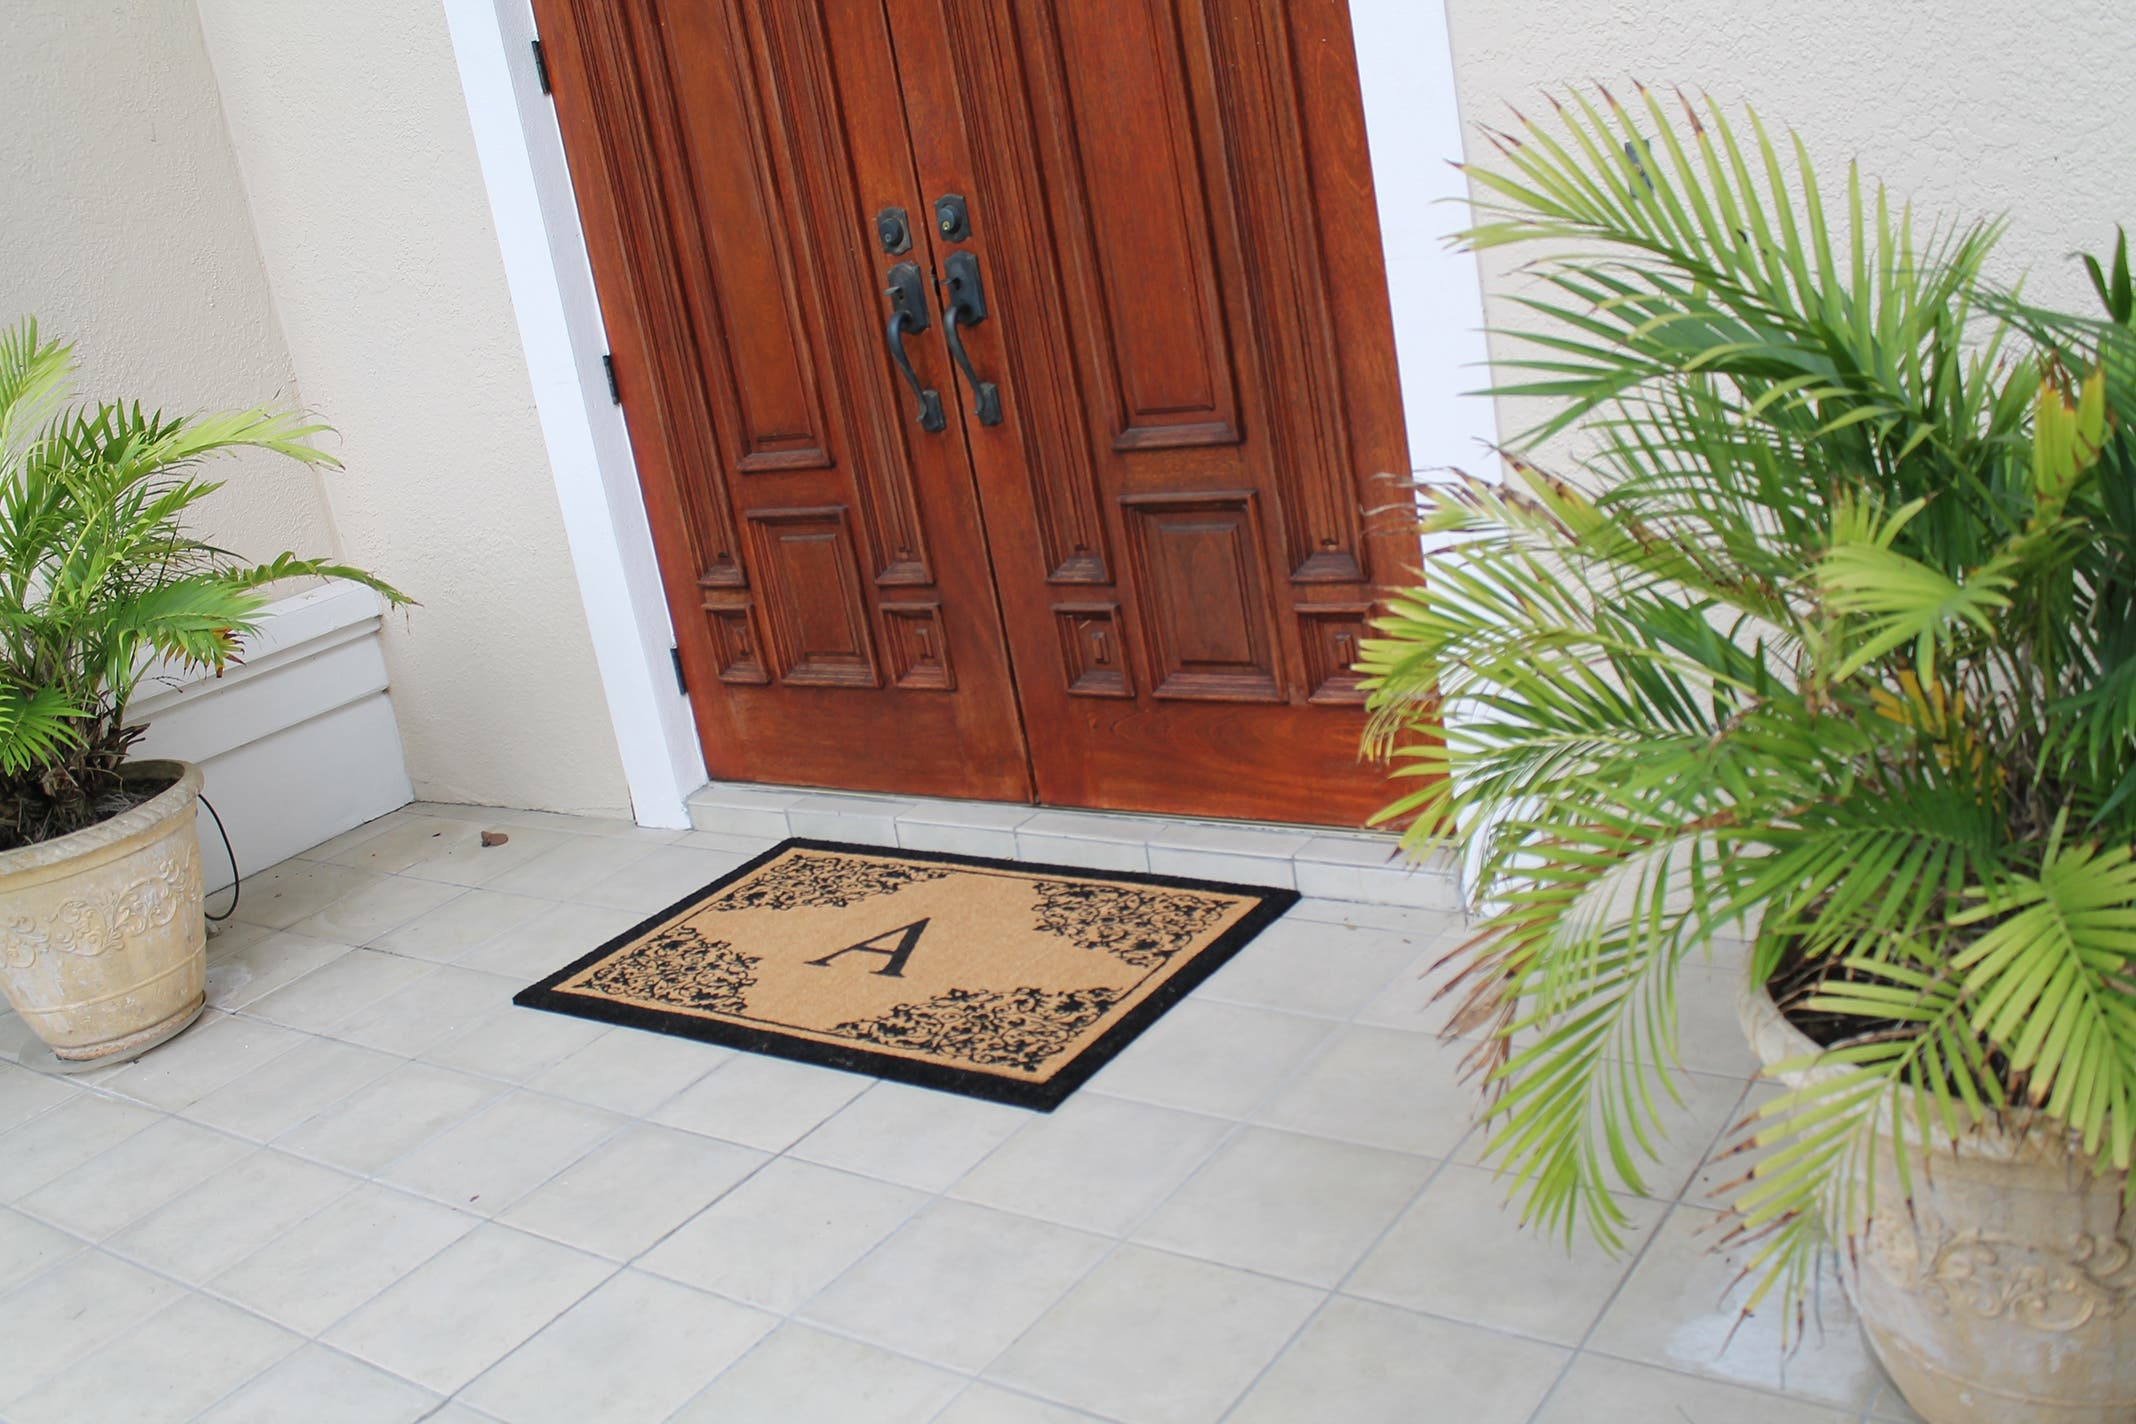 A1HC First Impression Hand Crafted 30 Inch. X 48 Inch. Courtyard Entry Double Monogrammed Doormat|https://ak1.ostkcdn.com/images/products/190/508/P23045218.jpg?impolicy=medium